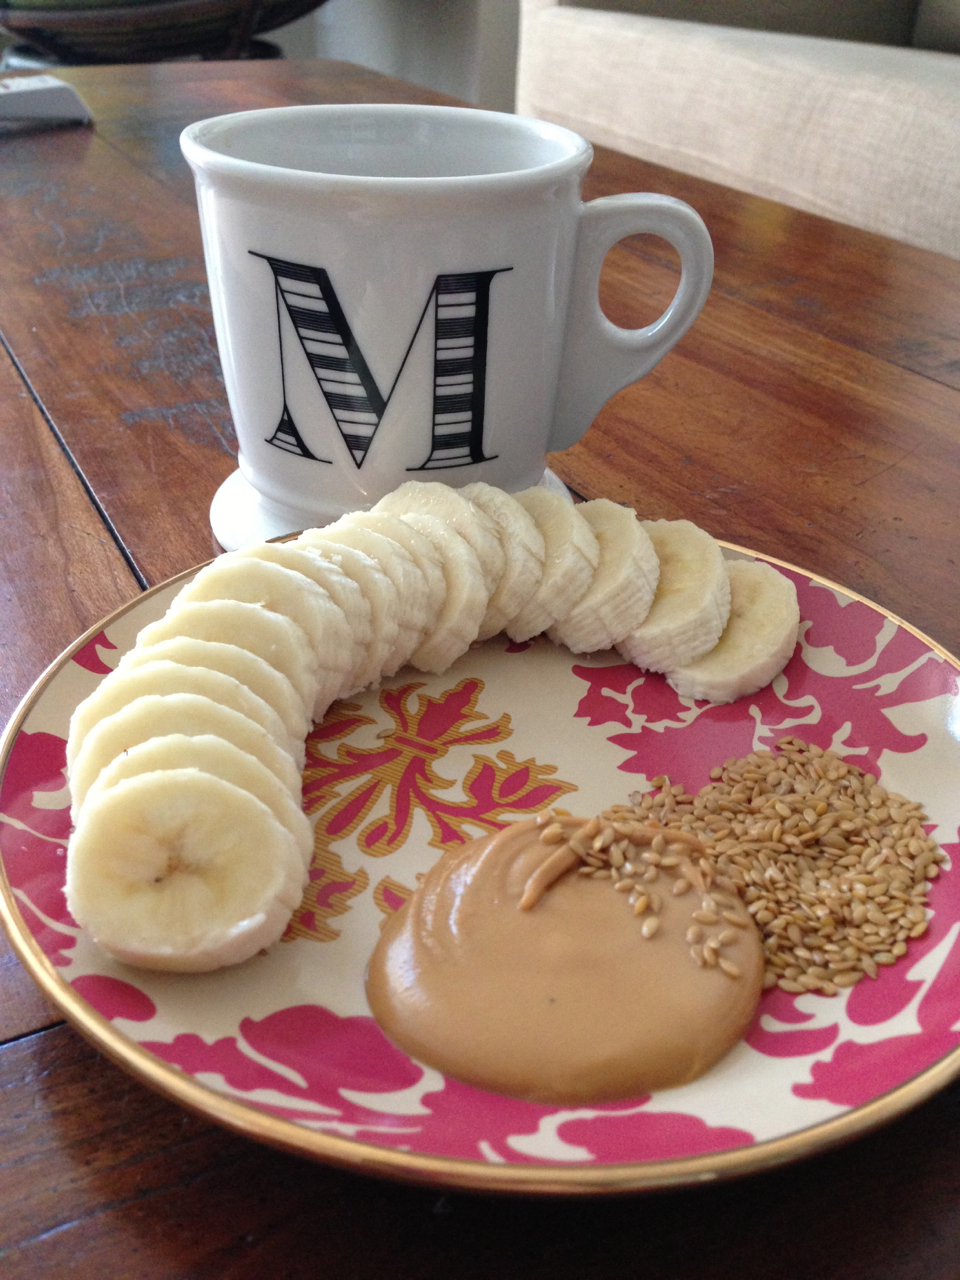 Bananas w/Almond Butter & Flax Seeds